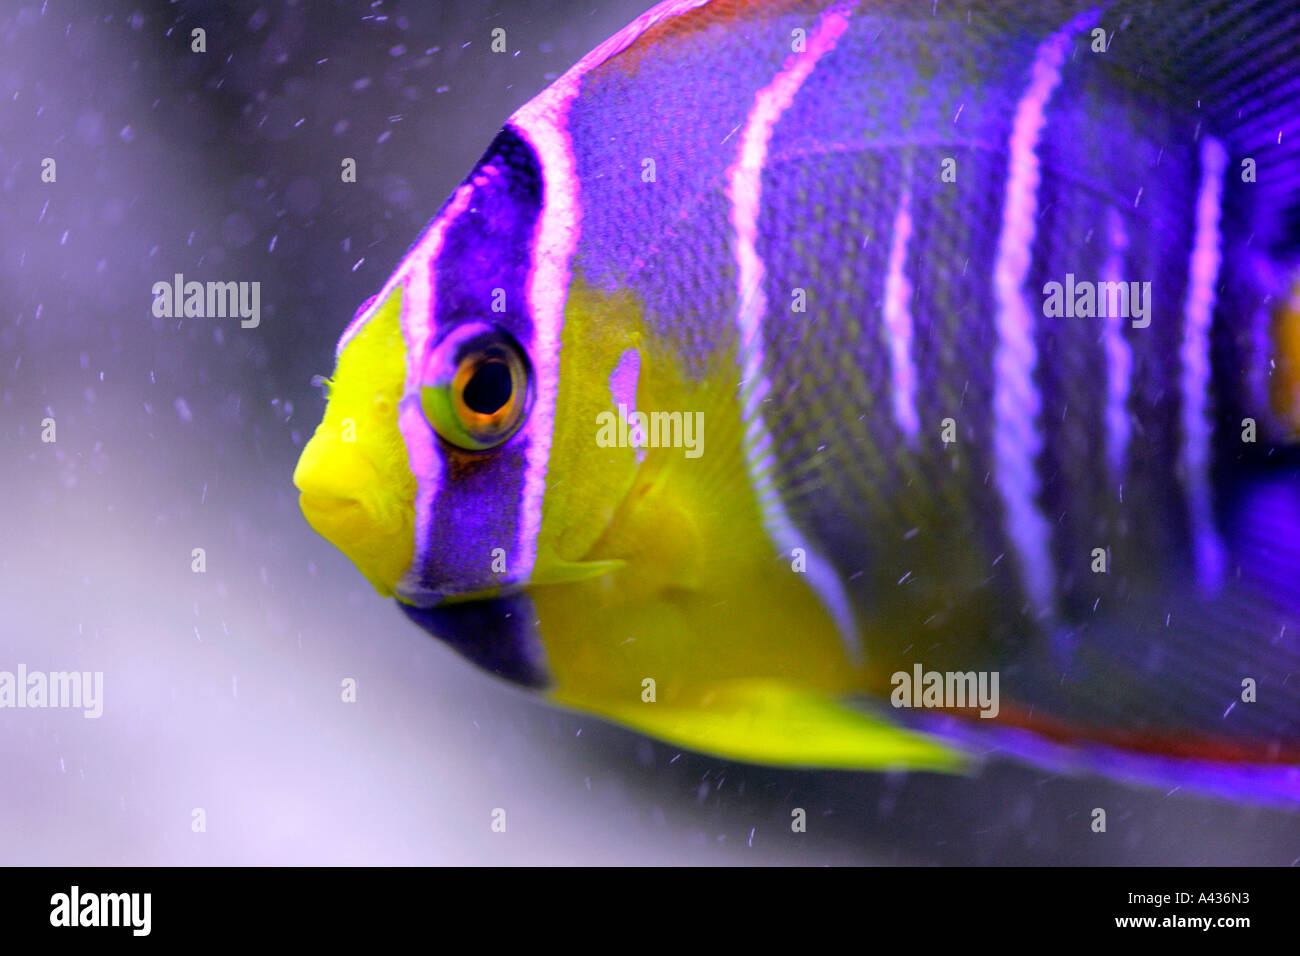 Freshwater fish diversity - Stock Photo Fish Aquarium Tank Animal Fishes Freshwater Aquaria Tropical Goldfish Fancy Red Blue Yellow Lilac Colour Color Genetic Diversity